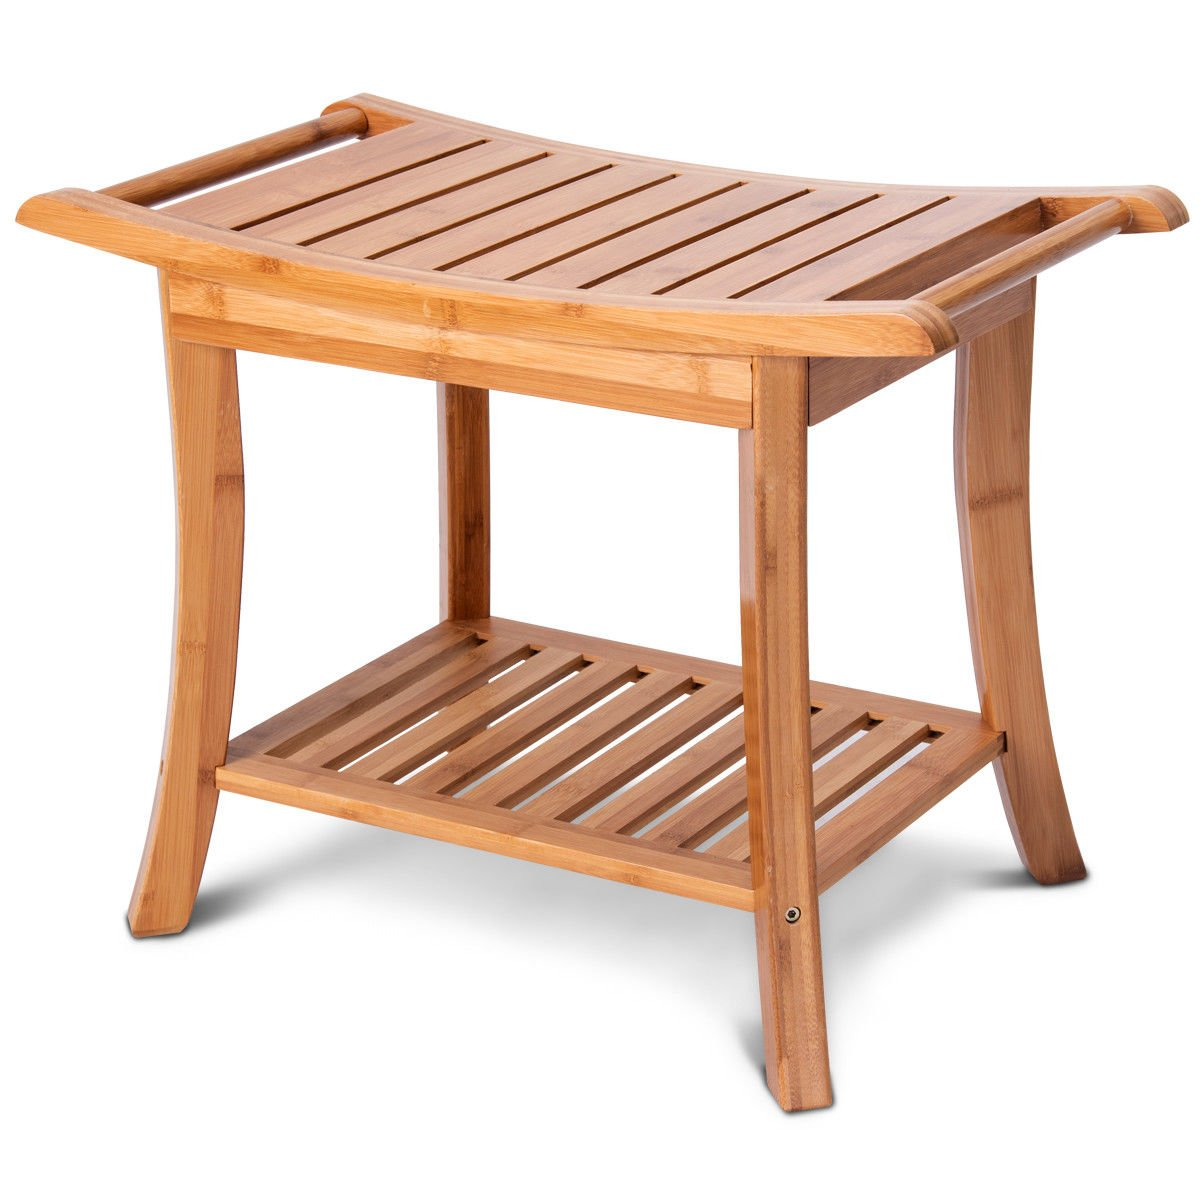 24'' Bamboo Shower Bench Spa Seat Organizer Stool Rounded Corners w/Storage Shelf